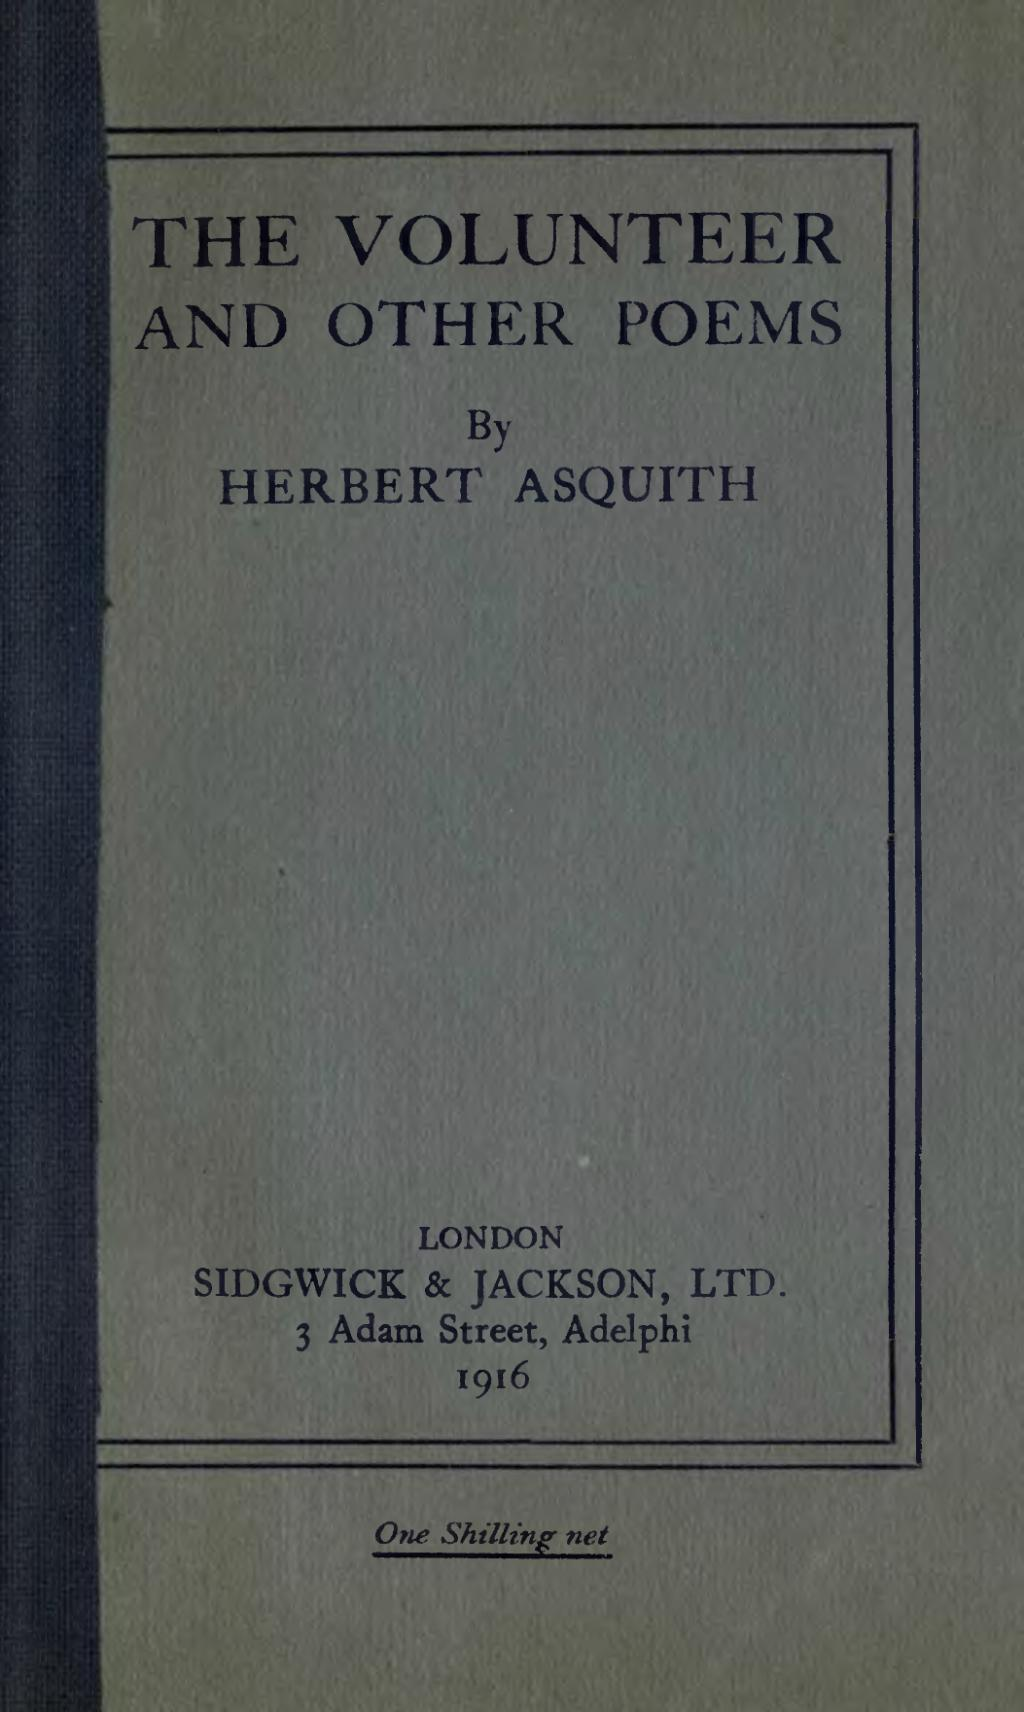 the volunteer herbert asquith essay The volunteer analysis quick fast explanatory summary pinkmonkey free cliffnotes cliffnotes ebook pdf doc file essay summary literary terms analysis.